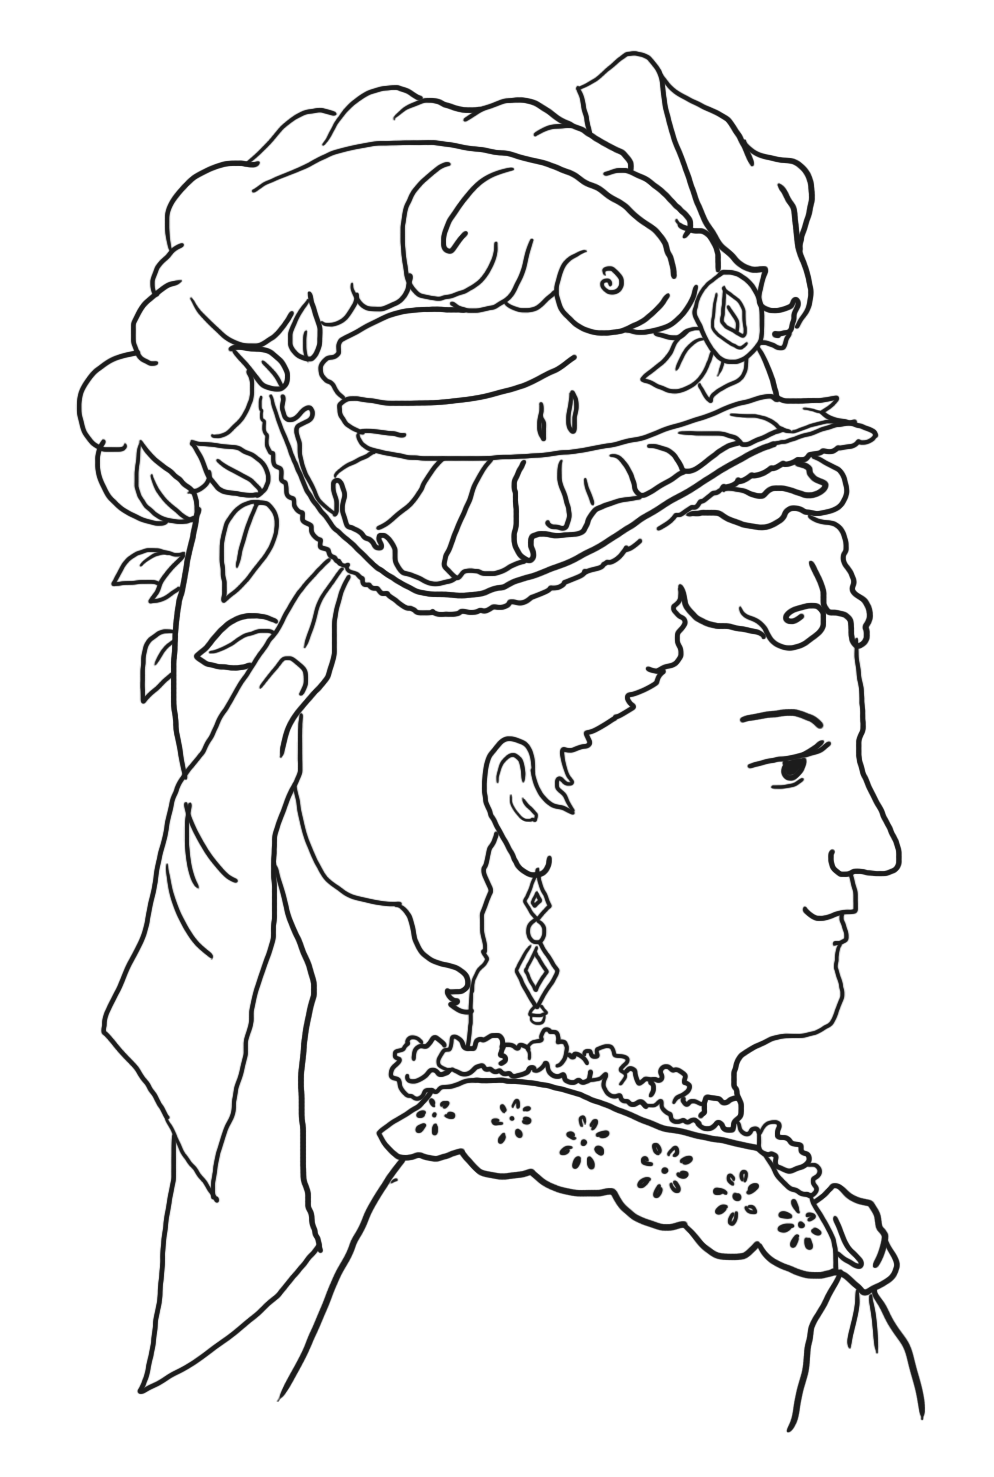 victorian coloring pages 14 best adult victorian coloring pages images on pinterest victorian coloring pages